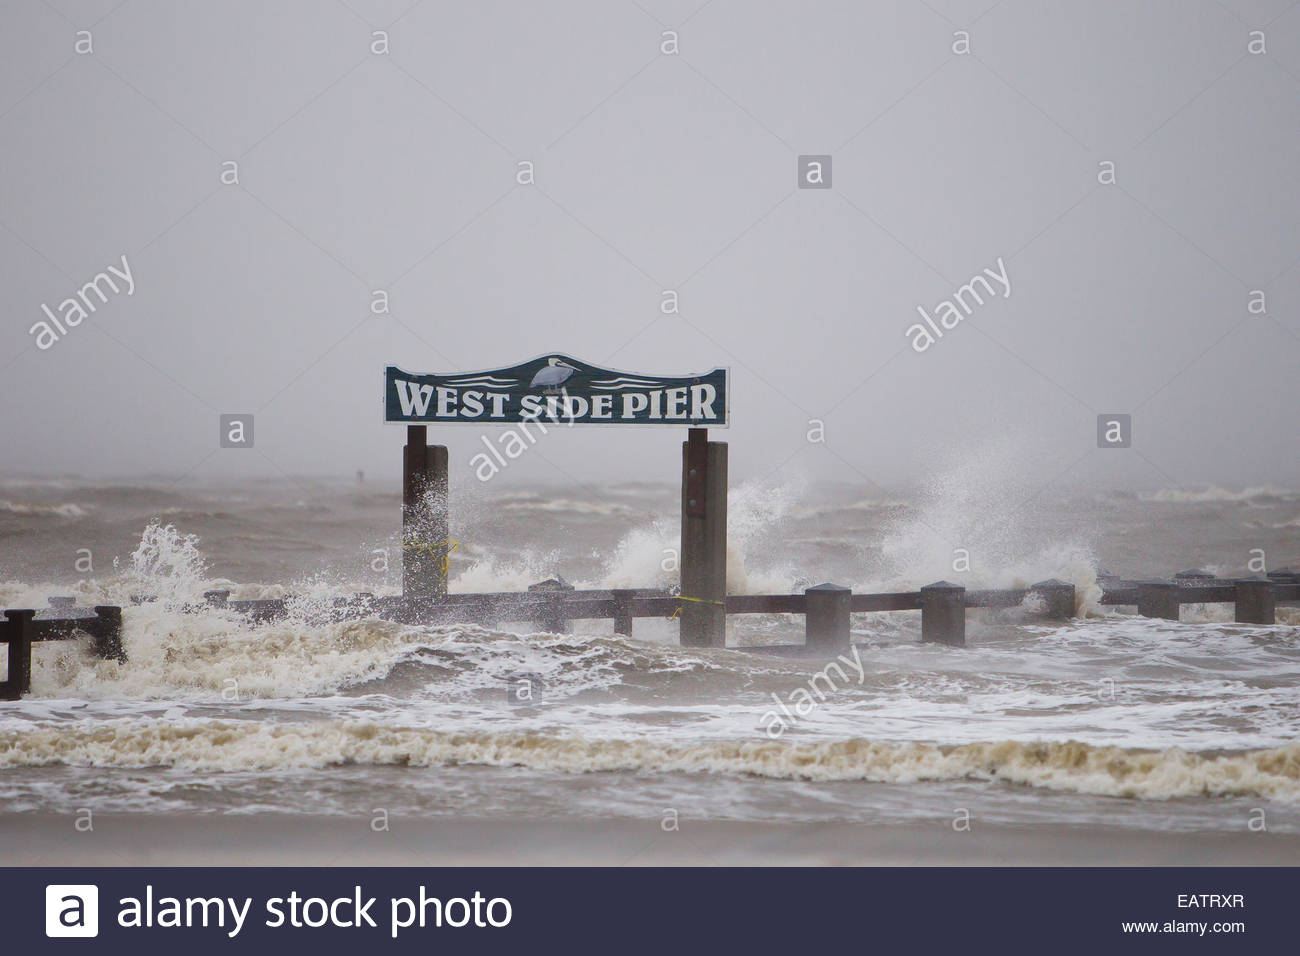 Hurricane Isaac's storm surge waves crashing into the West Side Pier. - Stock Image